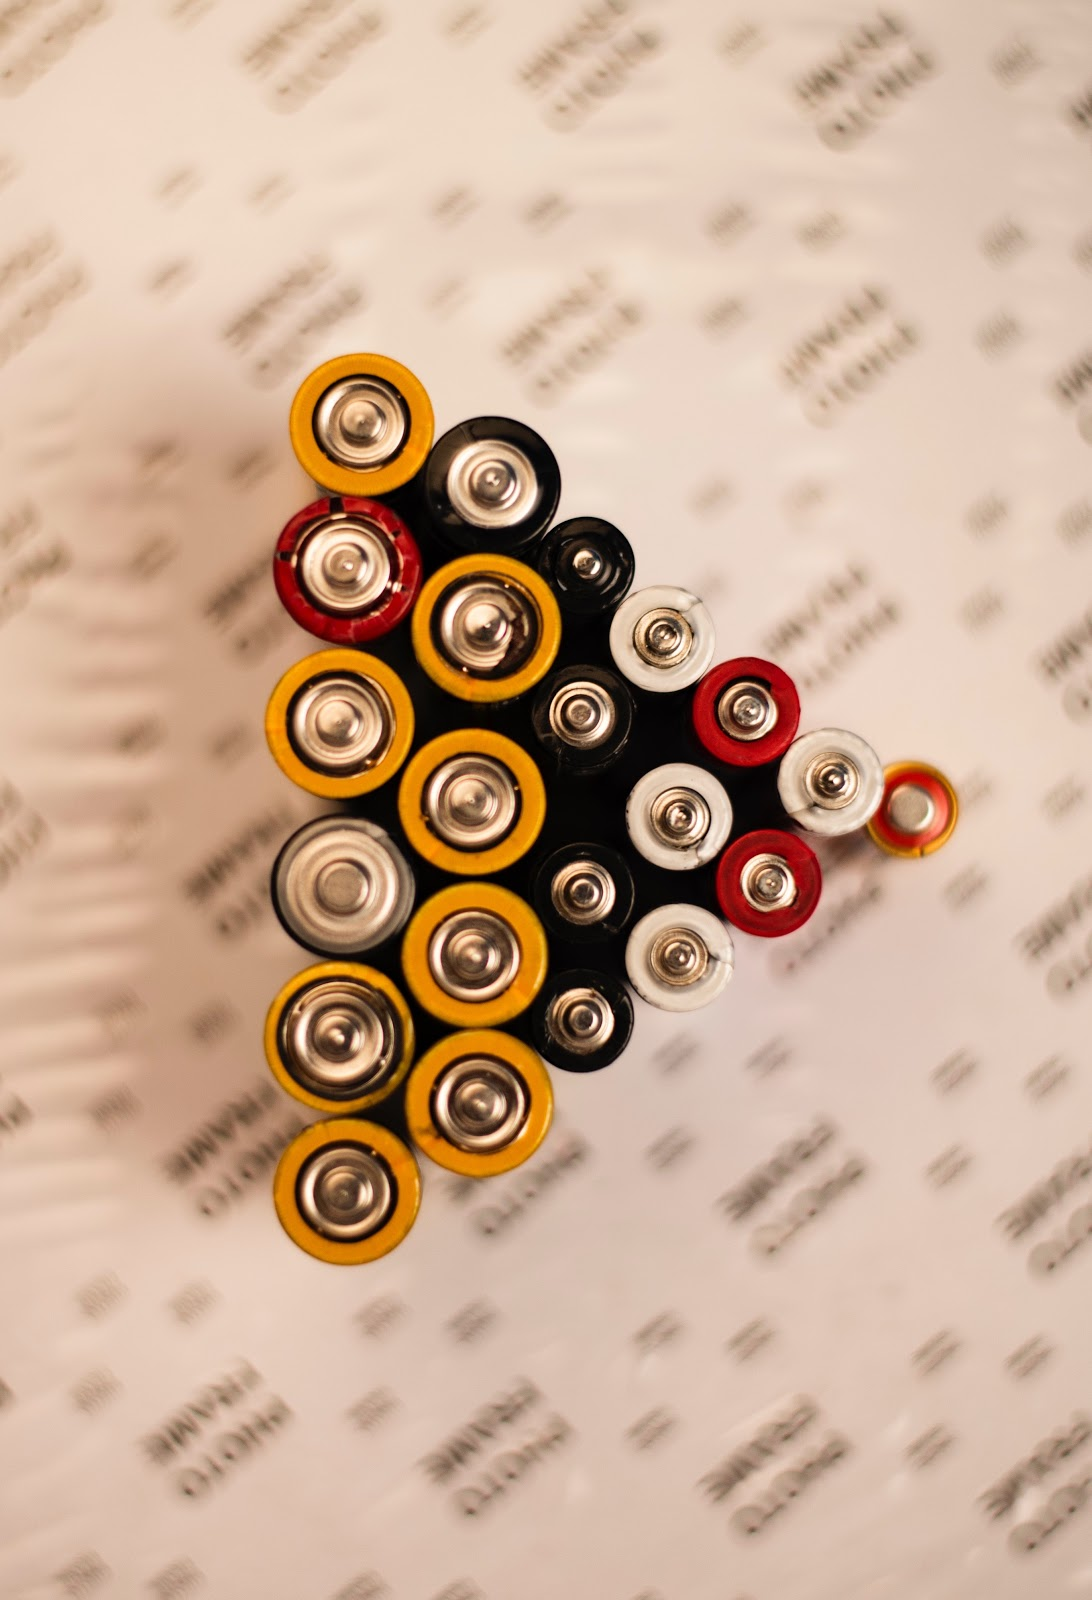 group of batteries on a table.